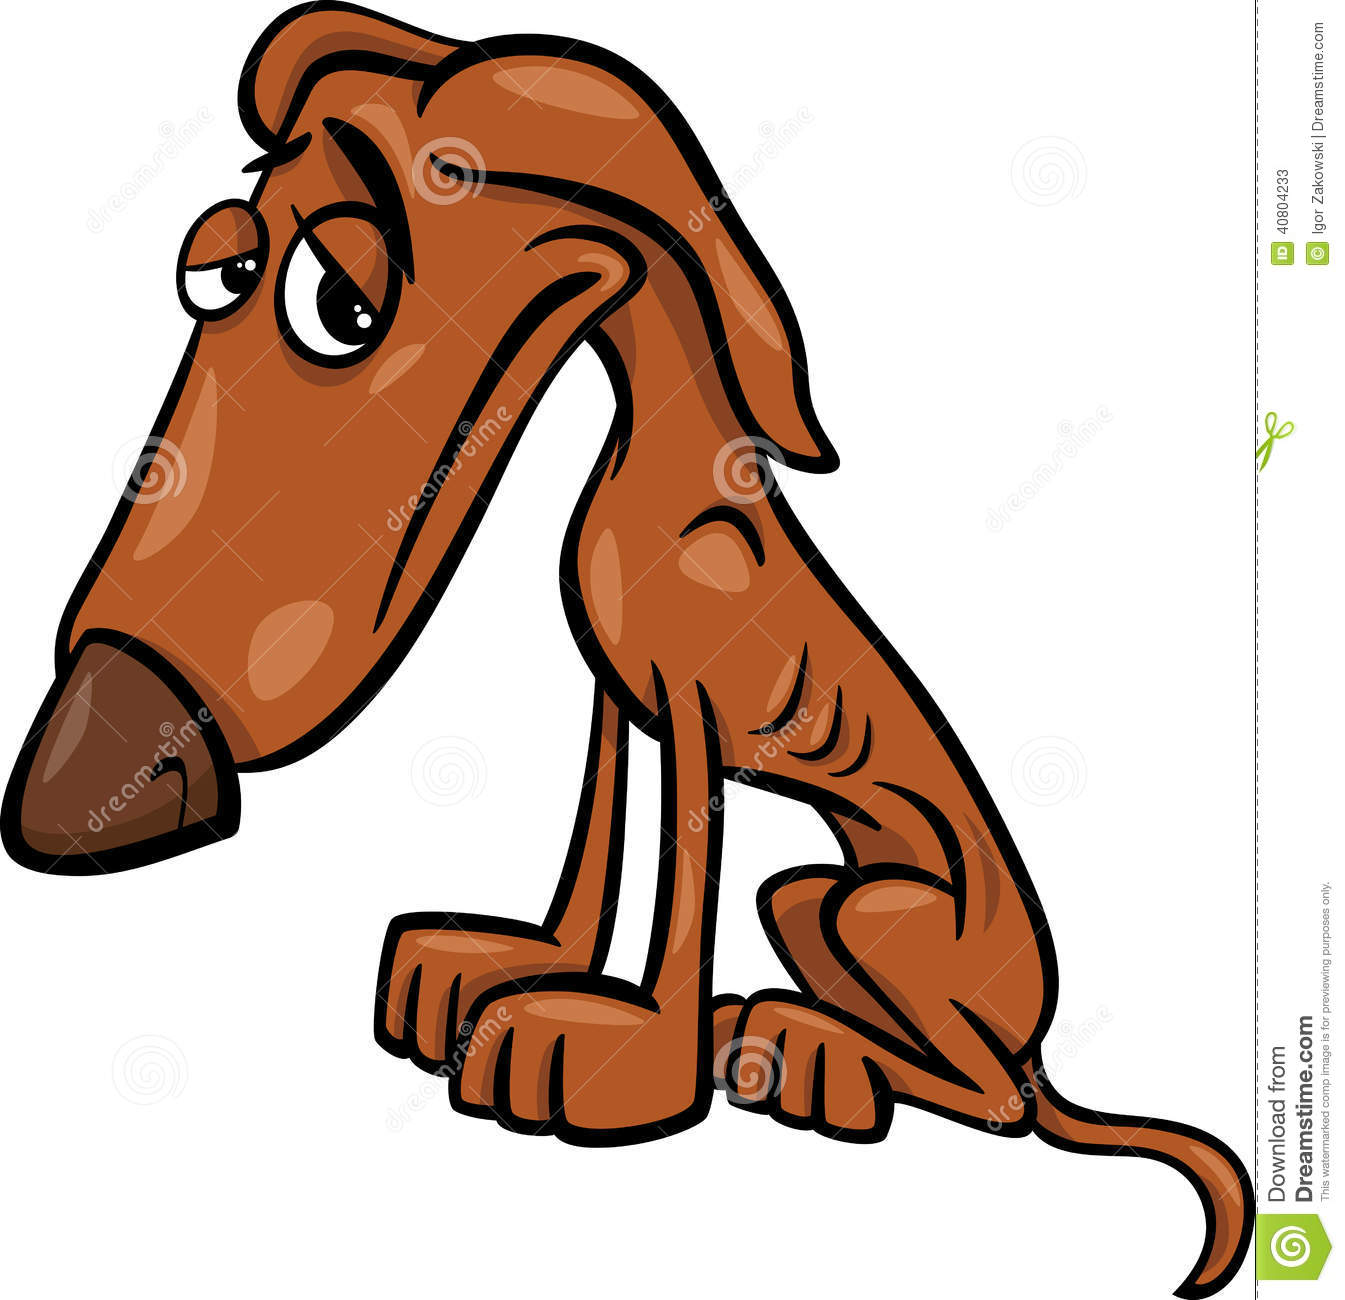 Dog With Droopy Eyes Cartoon